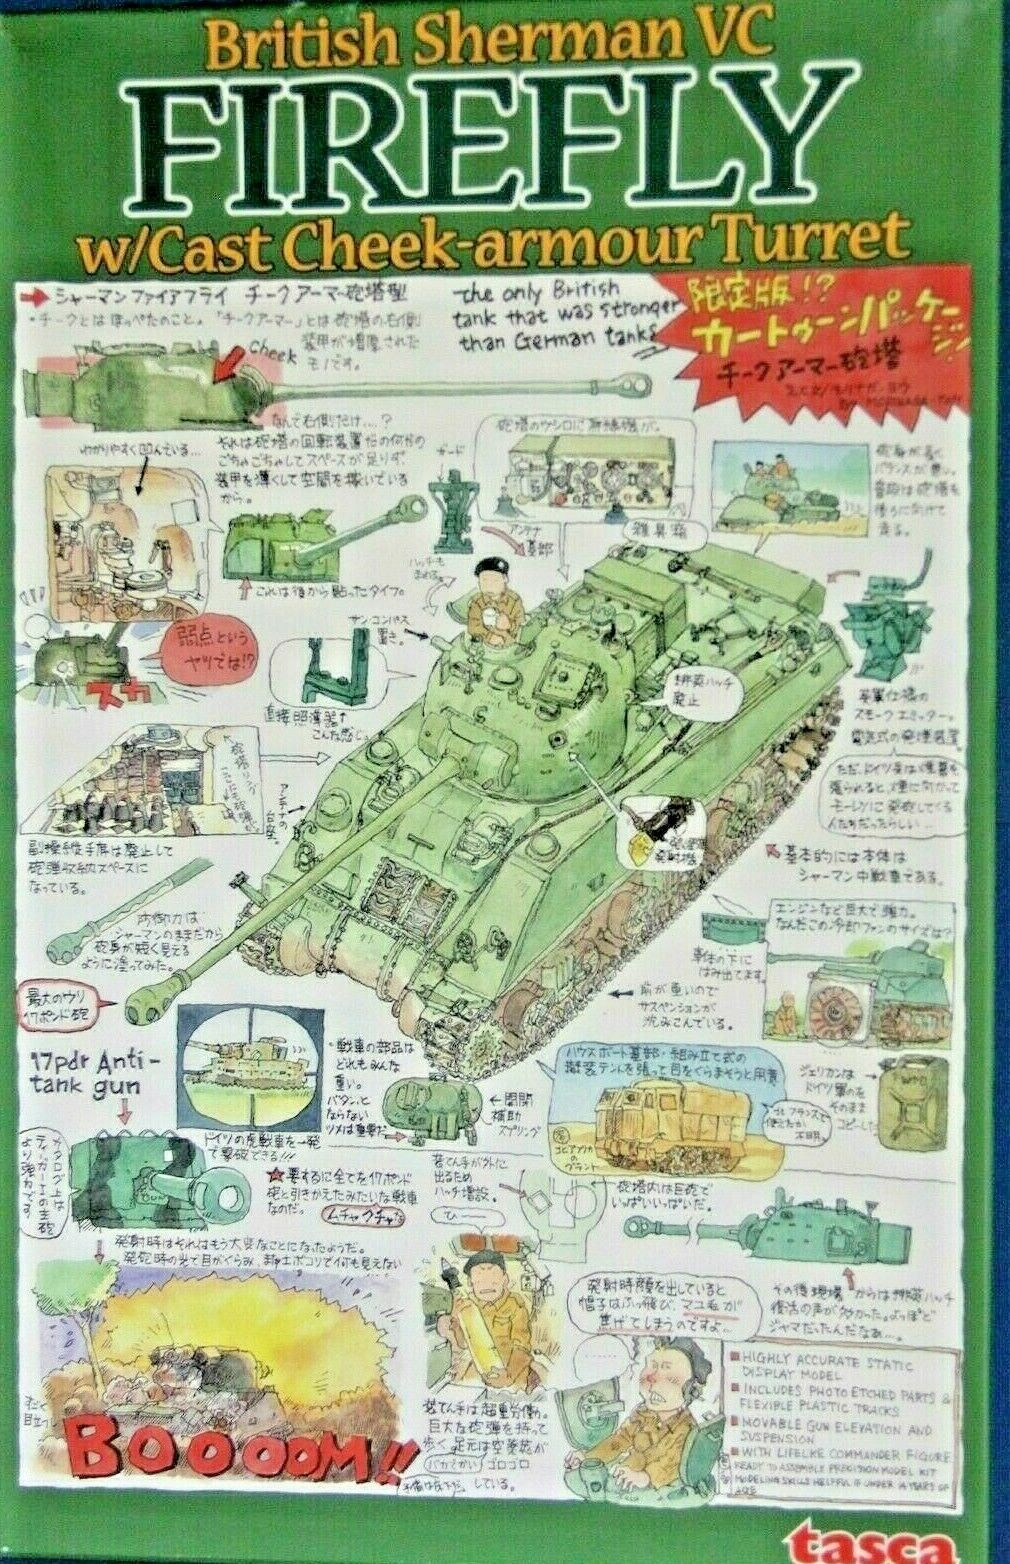 1 35 HOBBY ASUKA TASCA BRITISH SHERMAN VC FIREFLY CAST CHEEK ARMOR TURRET. NEW